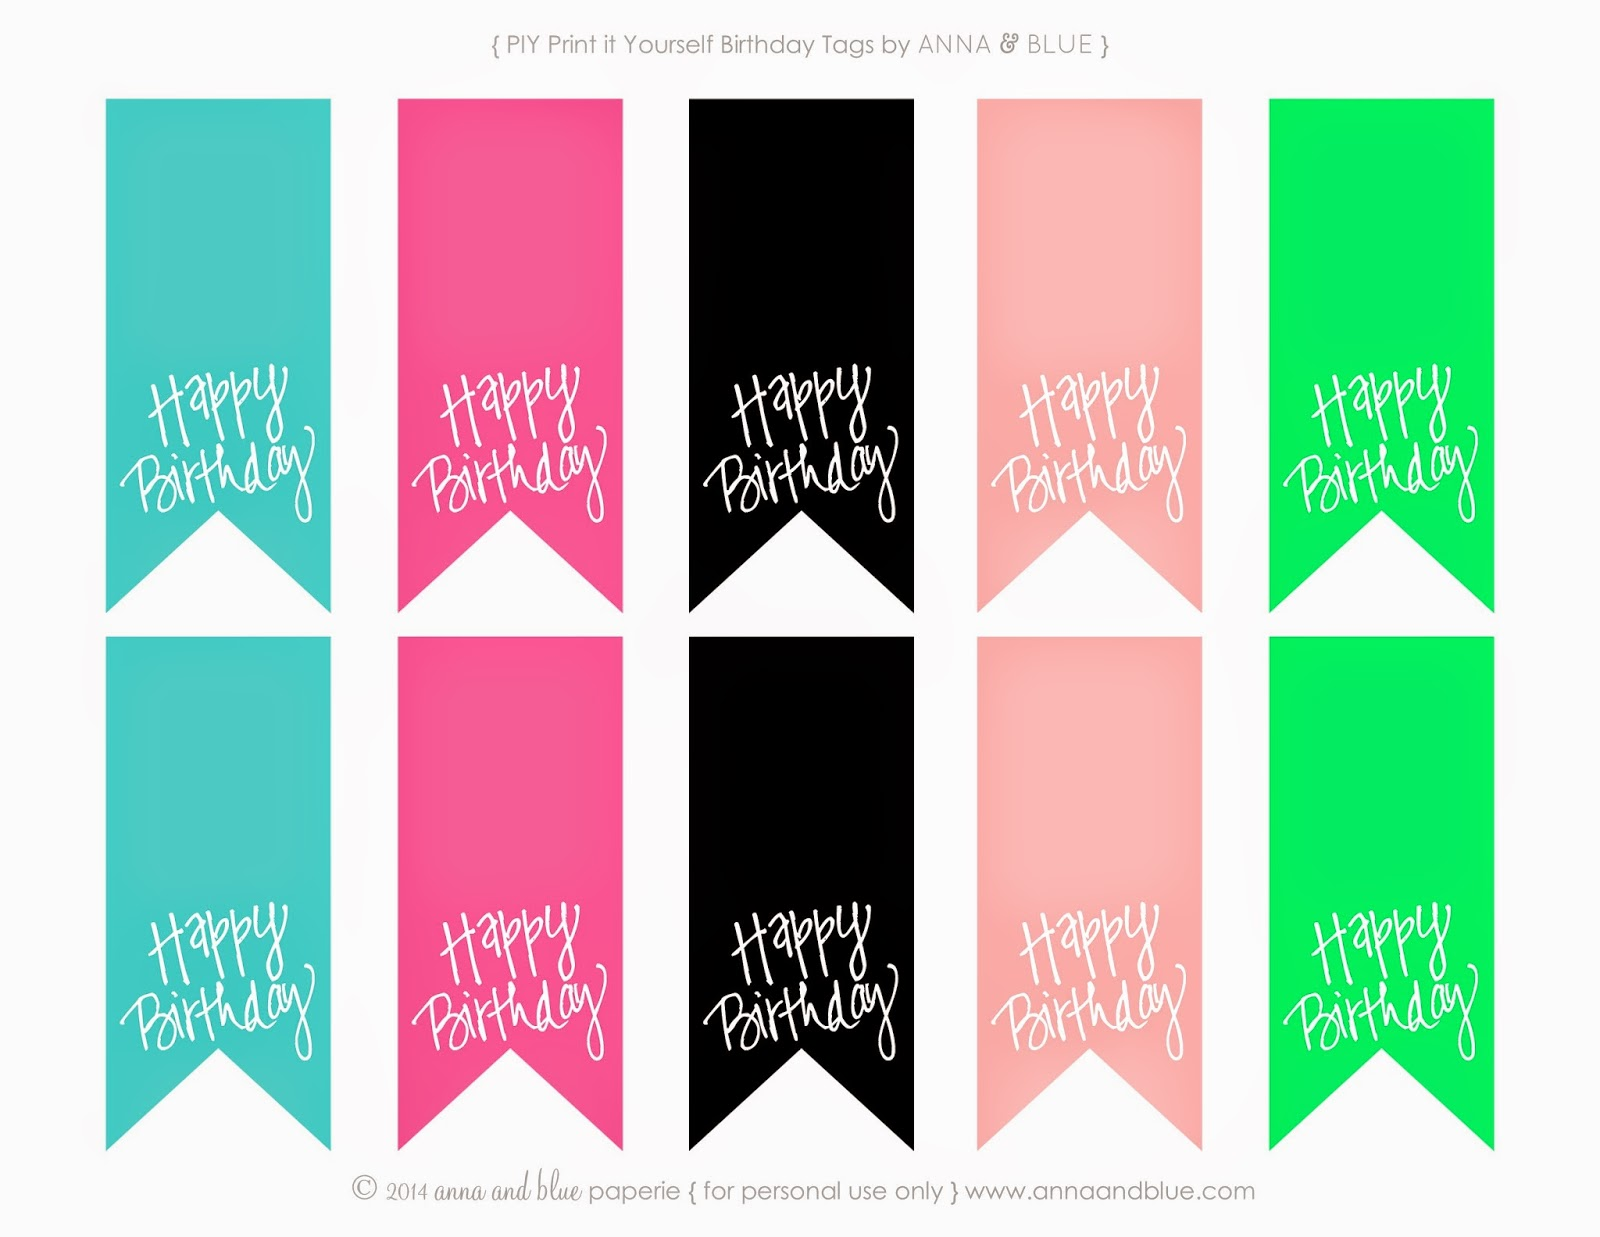 Anna and blue paperie free printable happy birthday gift tags in with our newest free printable i created simple happy birthday gift tags in five different colors that will add the perfect touch for a birthday gift negle Choice Image